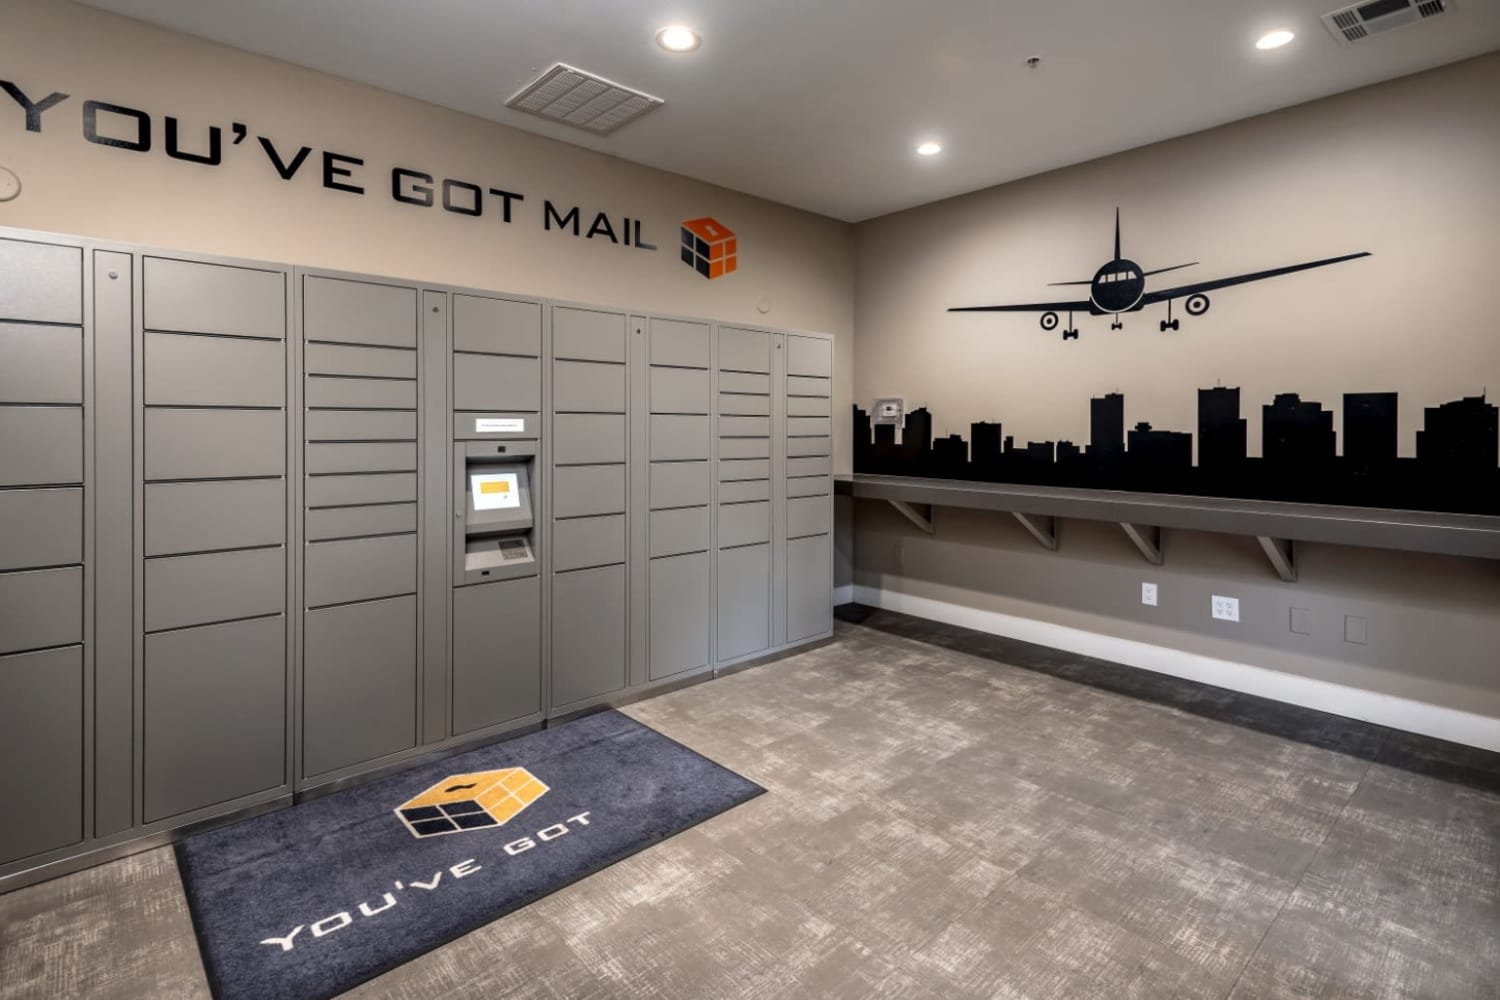 Dobson 2222 in Chandler, Arizona, offers a mail and package room